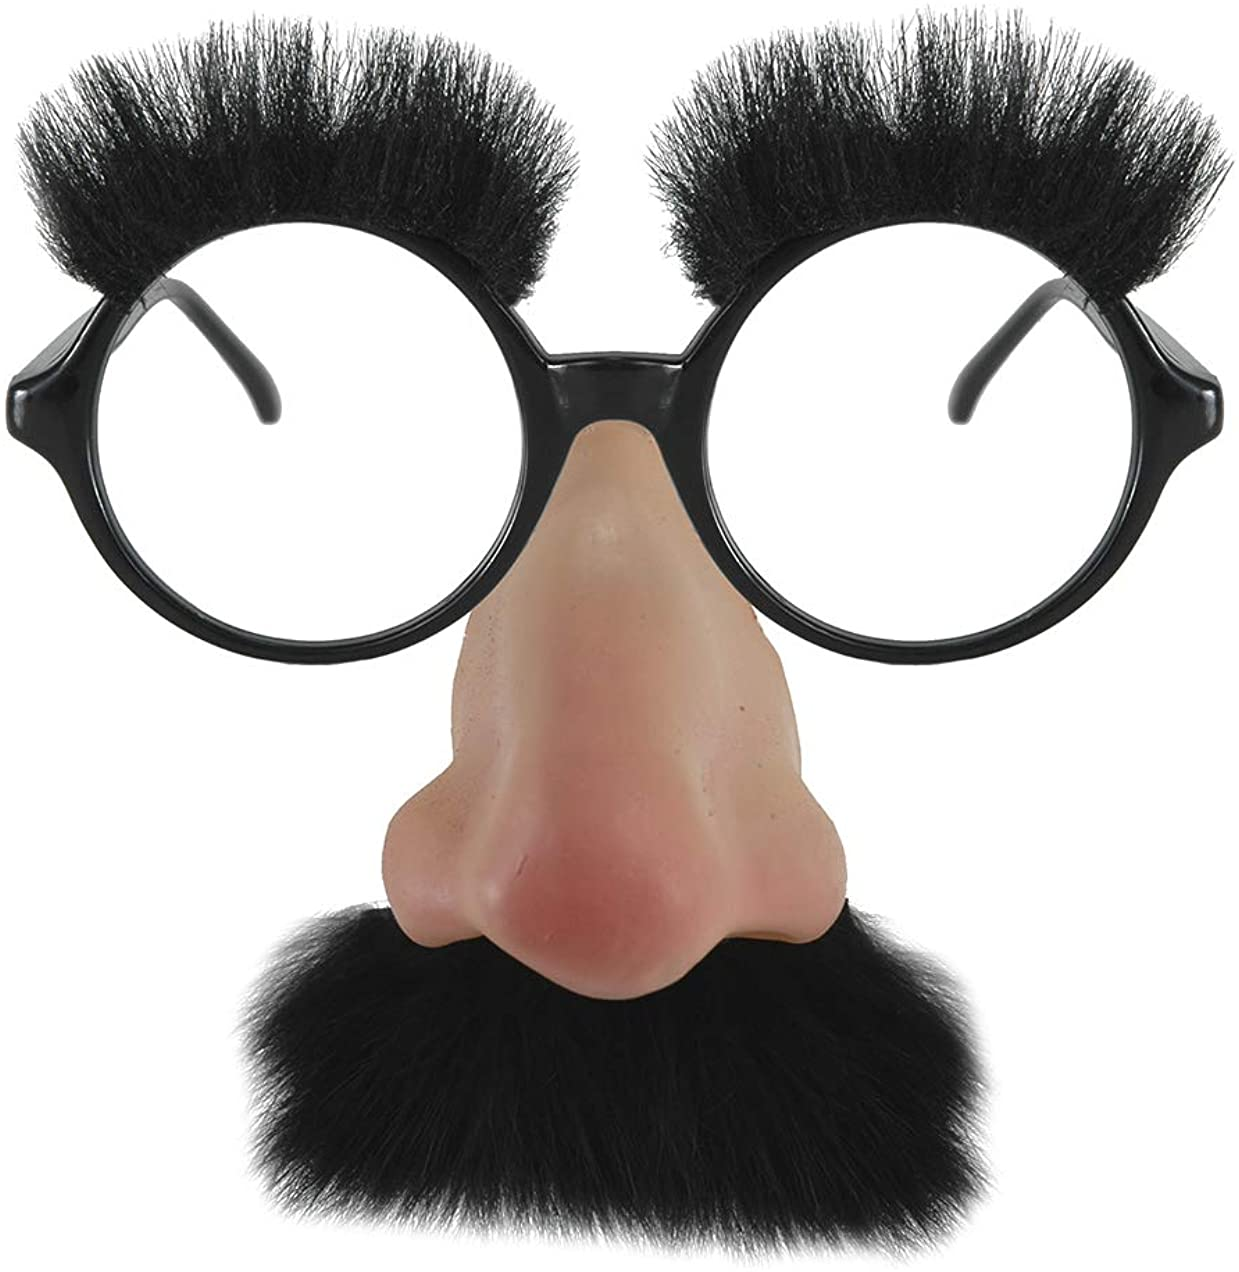 Groucho Marx glasses, nose and mustache